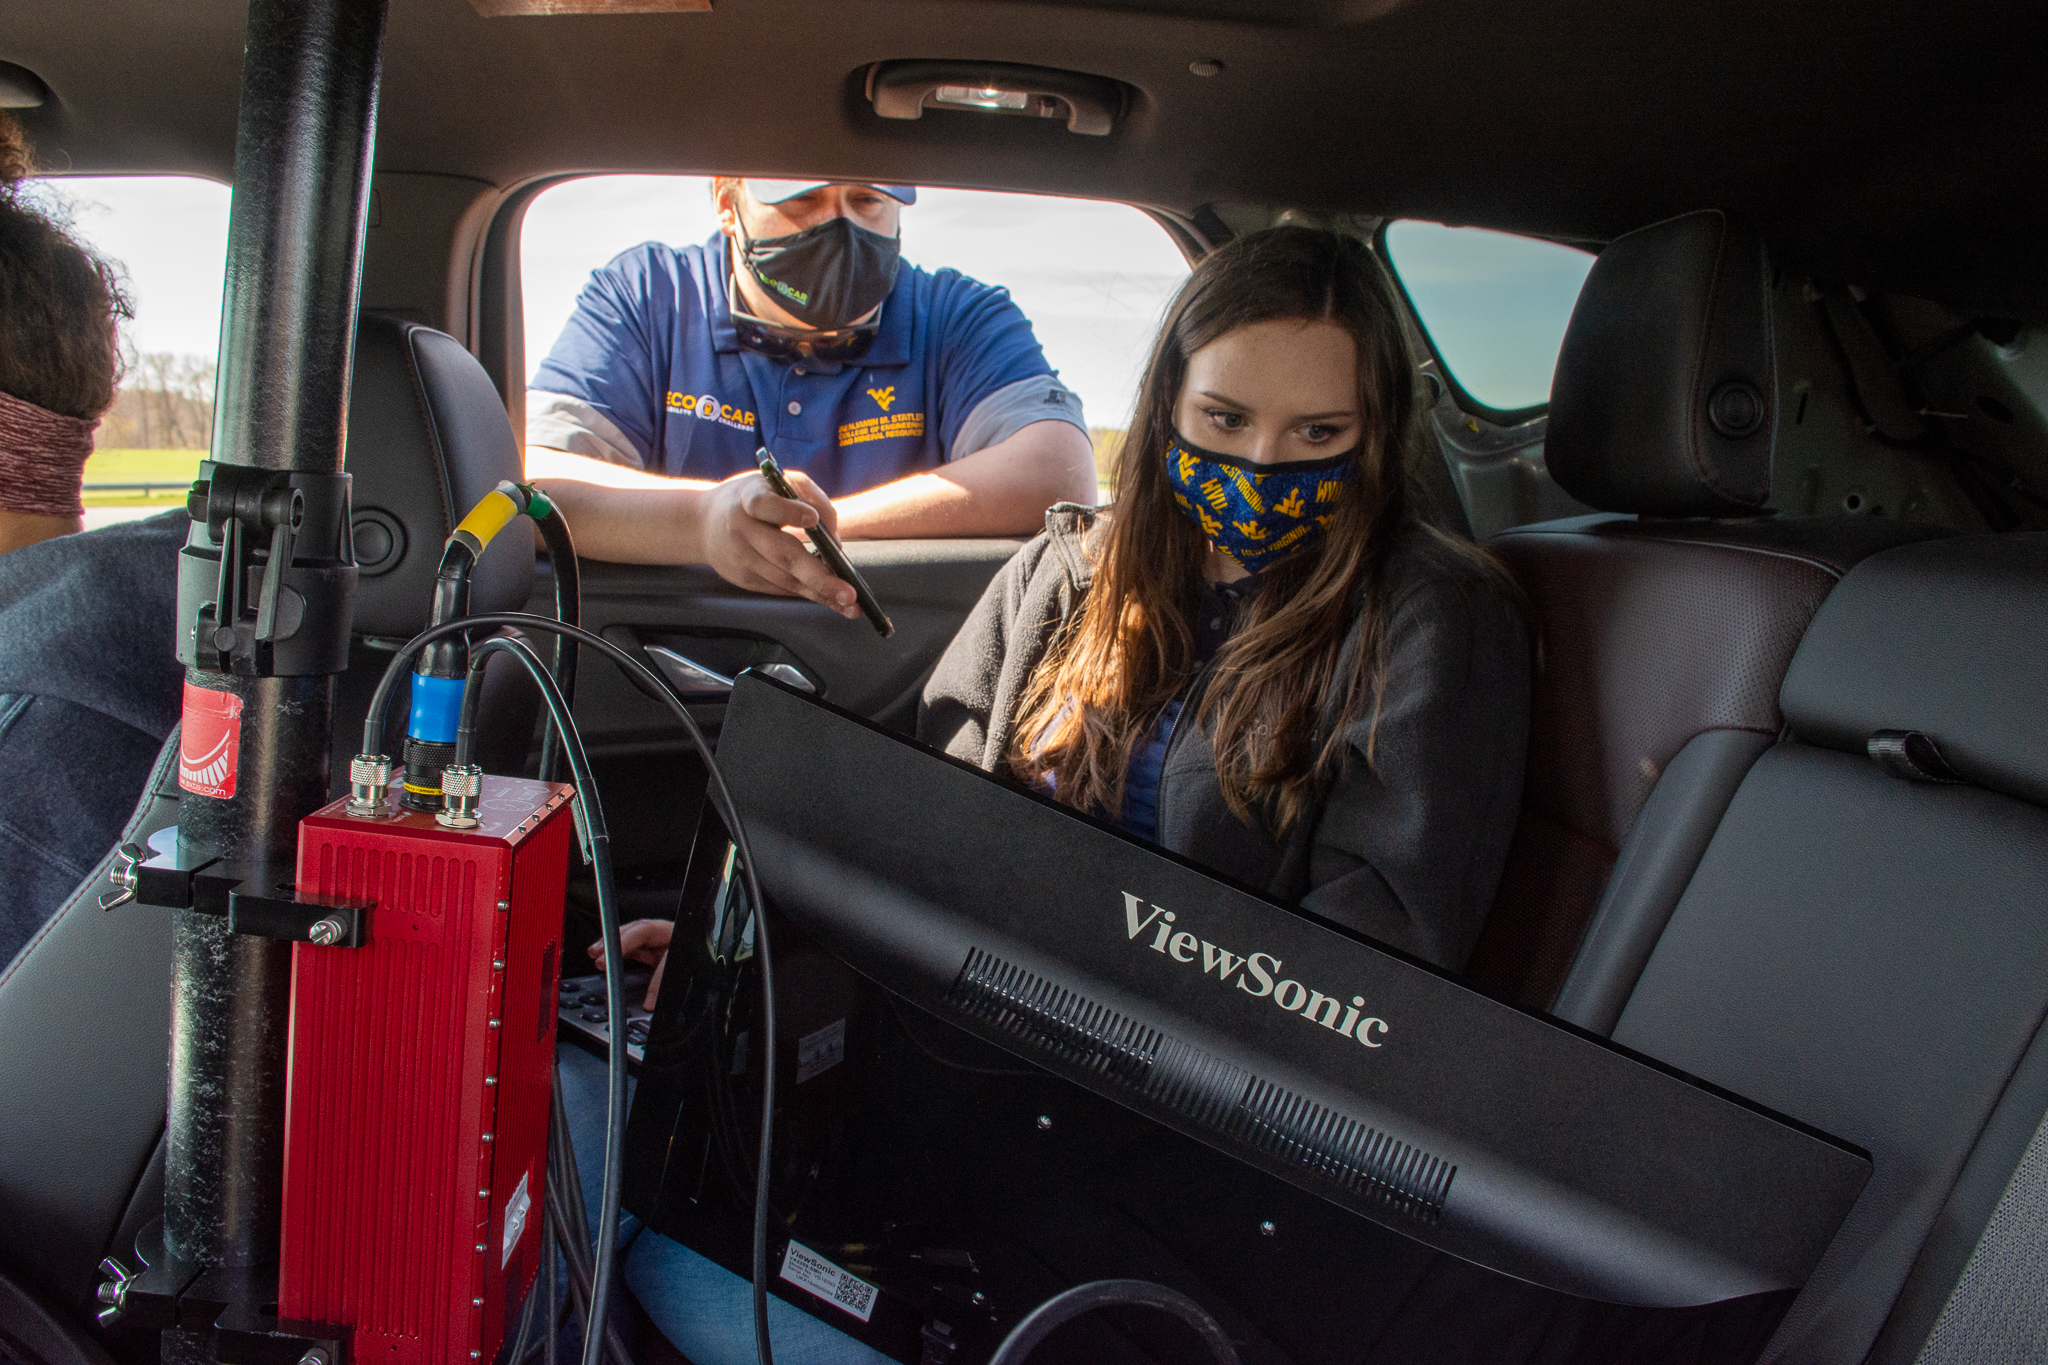 West Virginia University's EcoCAR team consisting of 90 students finished third in the four-year competition to redesign the 2019 Chevrolet Blazer into an energy-efficient hybrid. (Submitted photo)